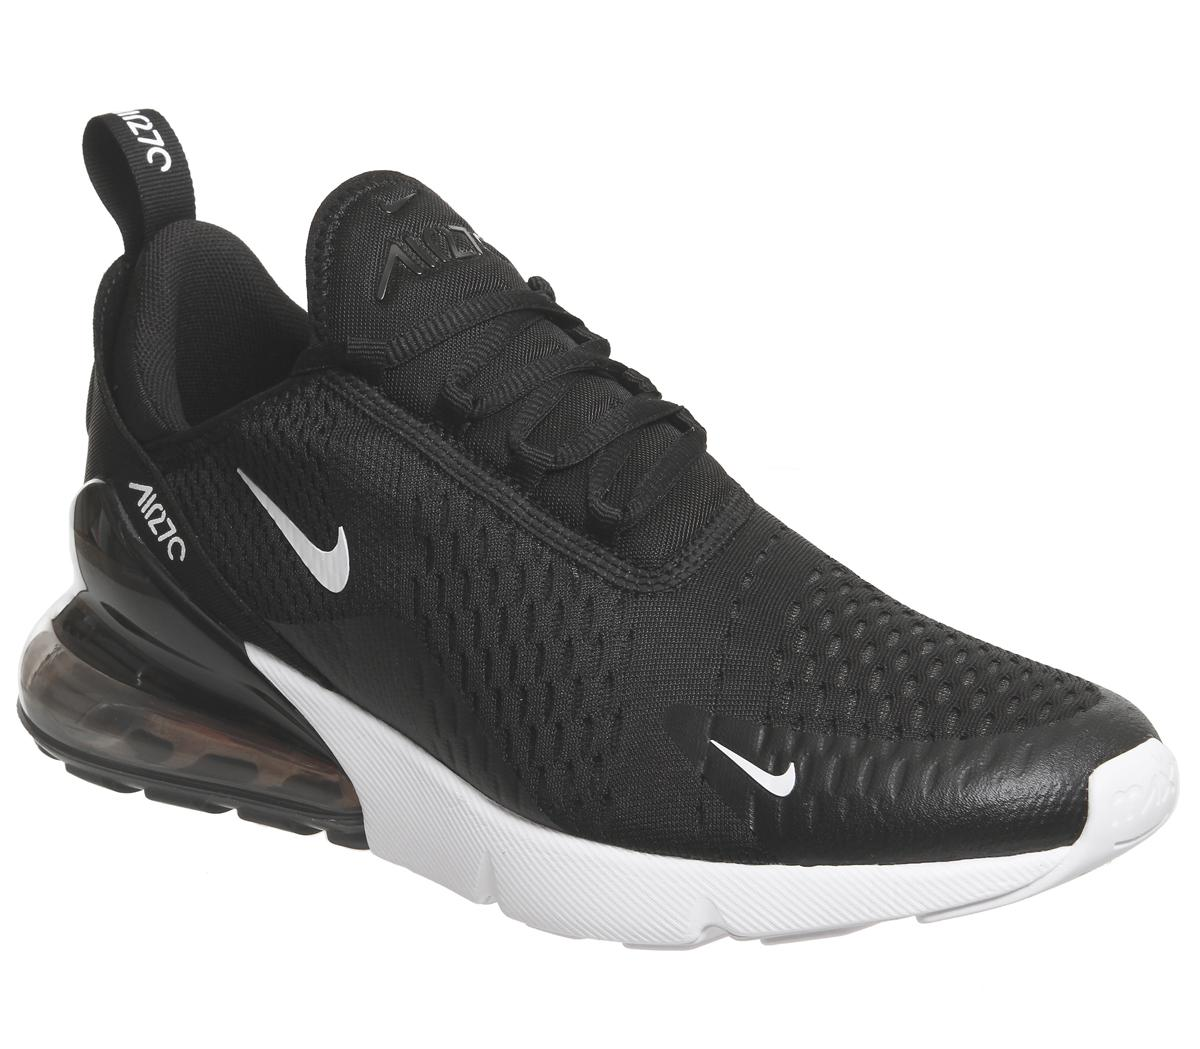 Black and white Nike sneakers I've